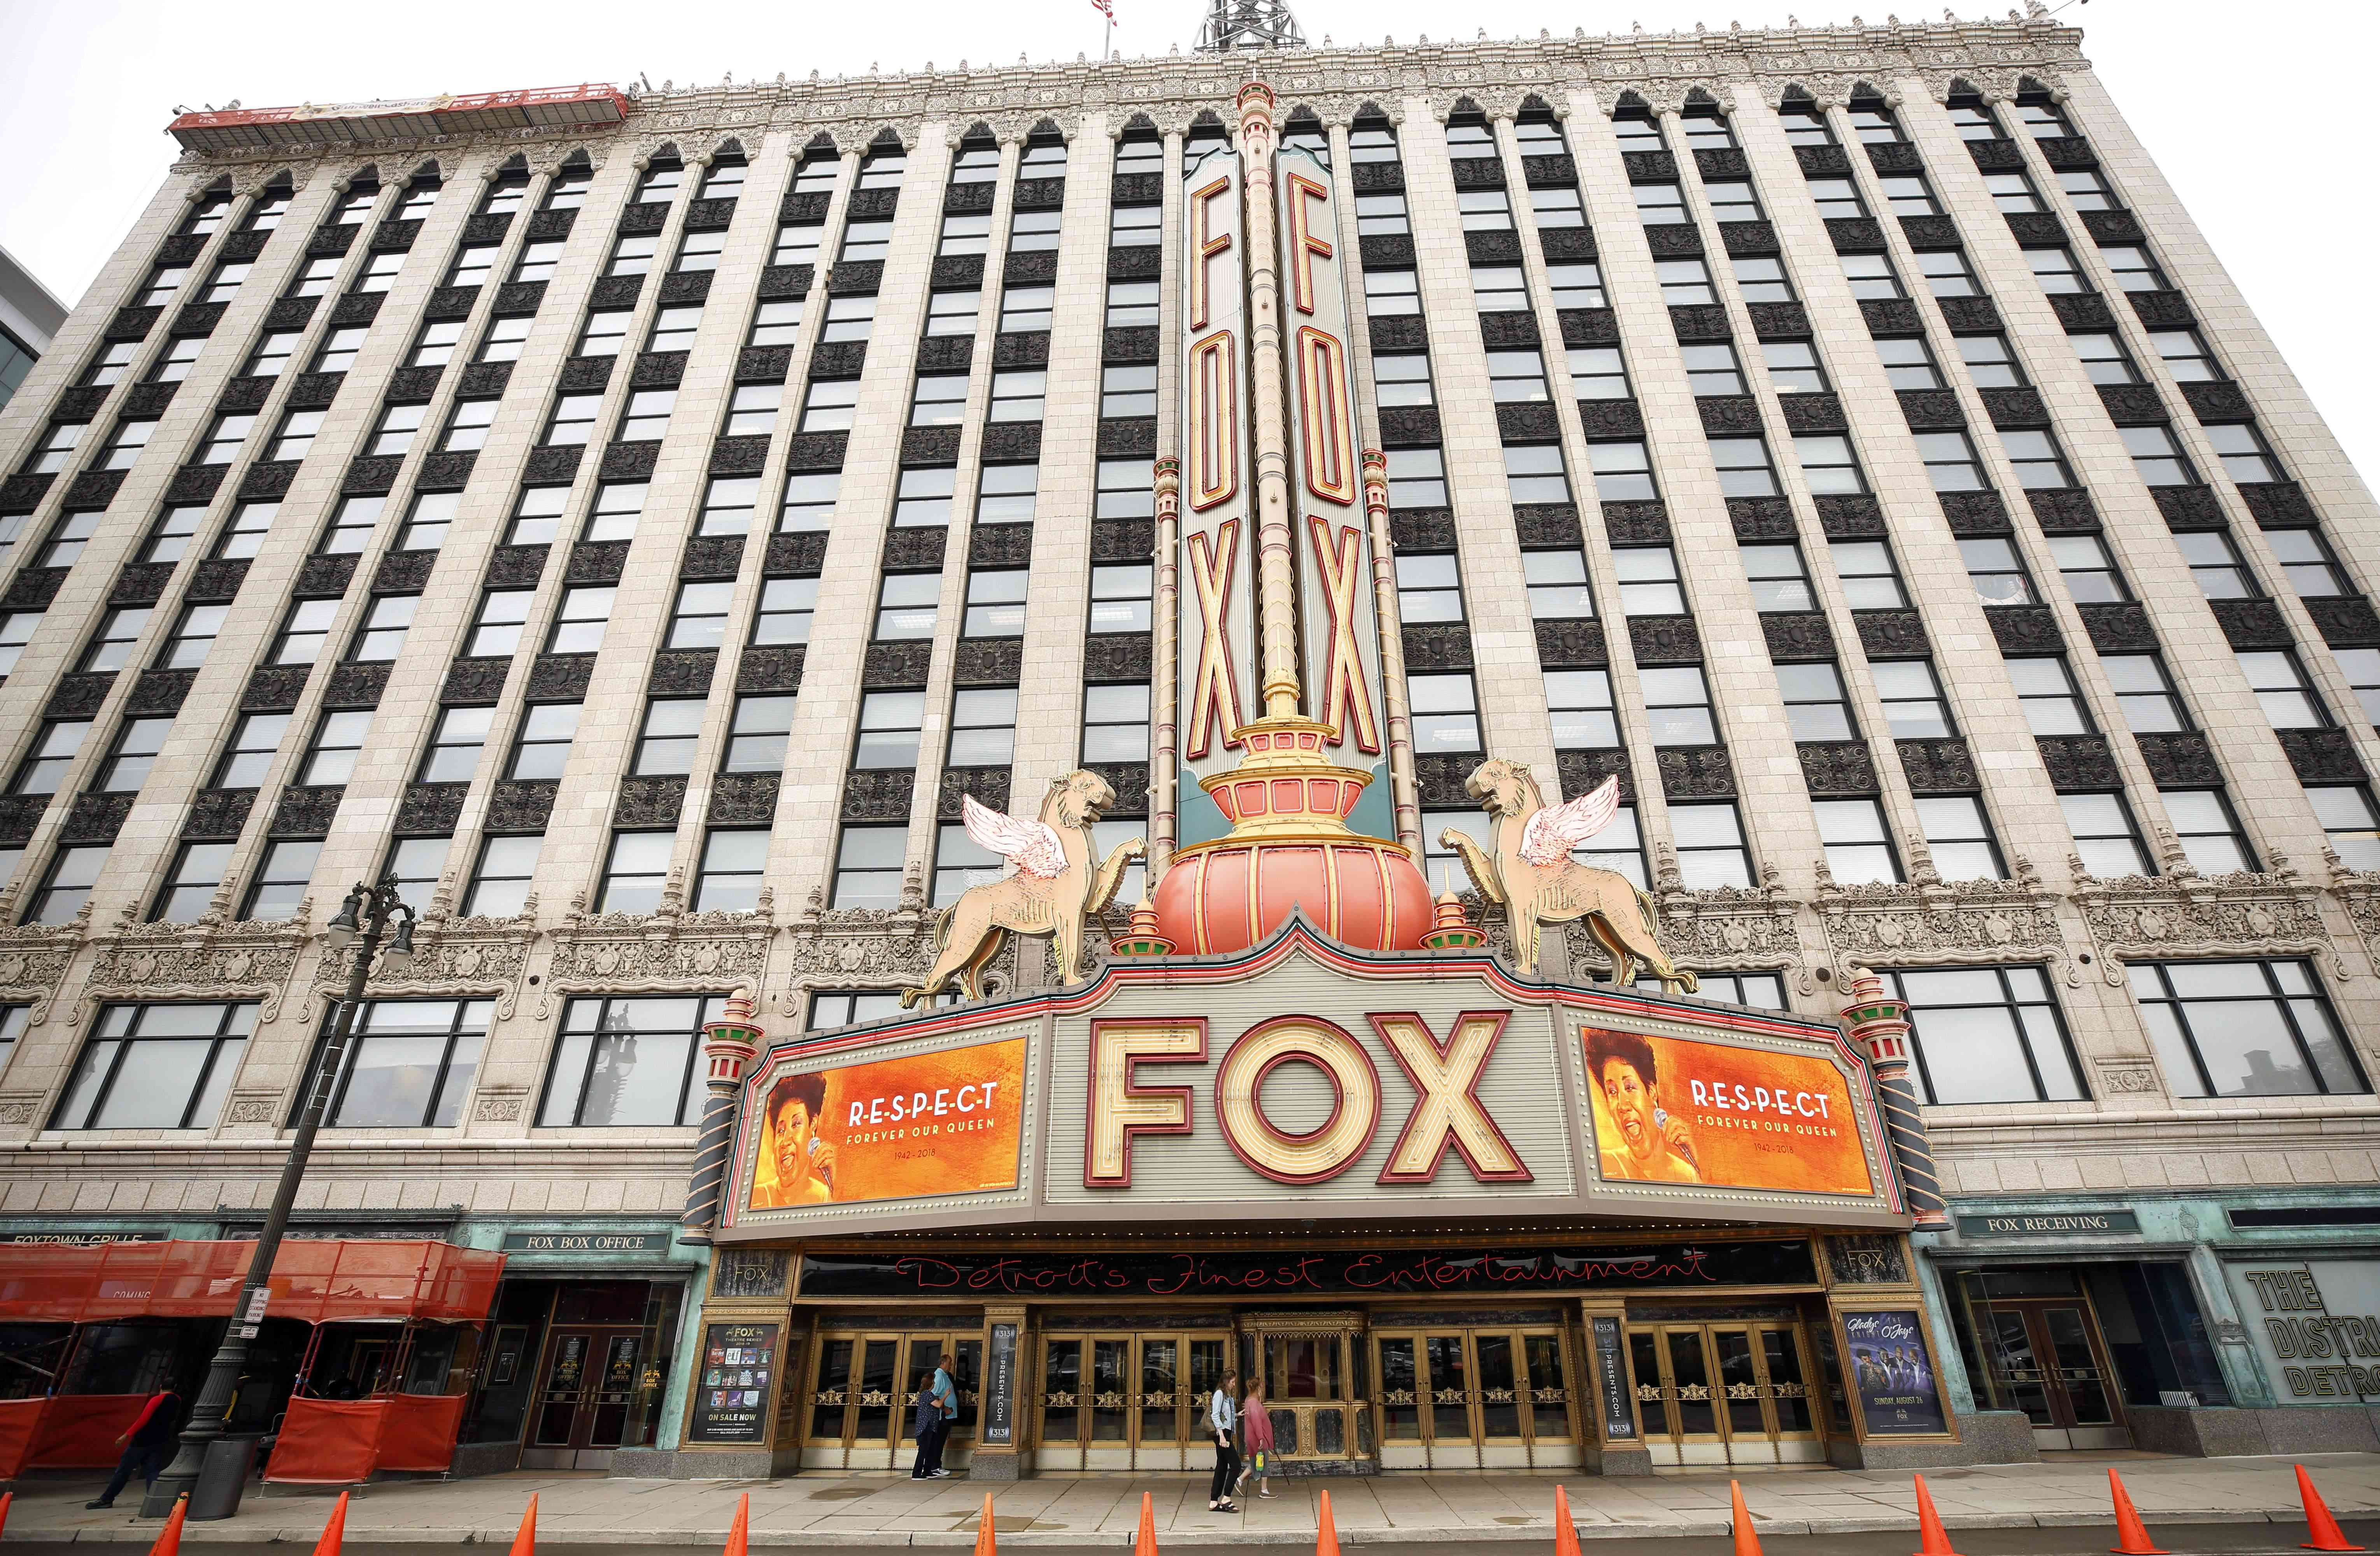 The marquee on the Fox Theatre